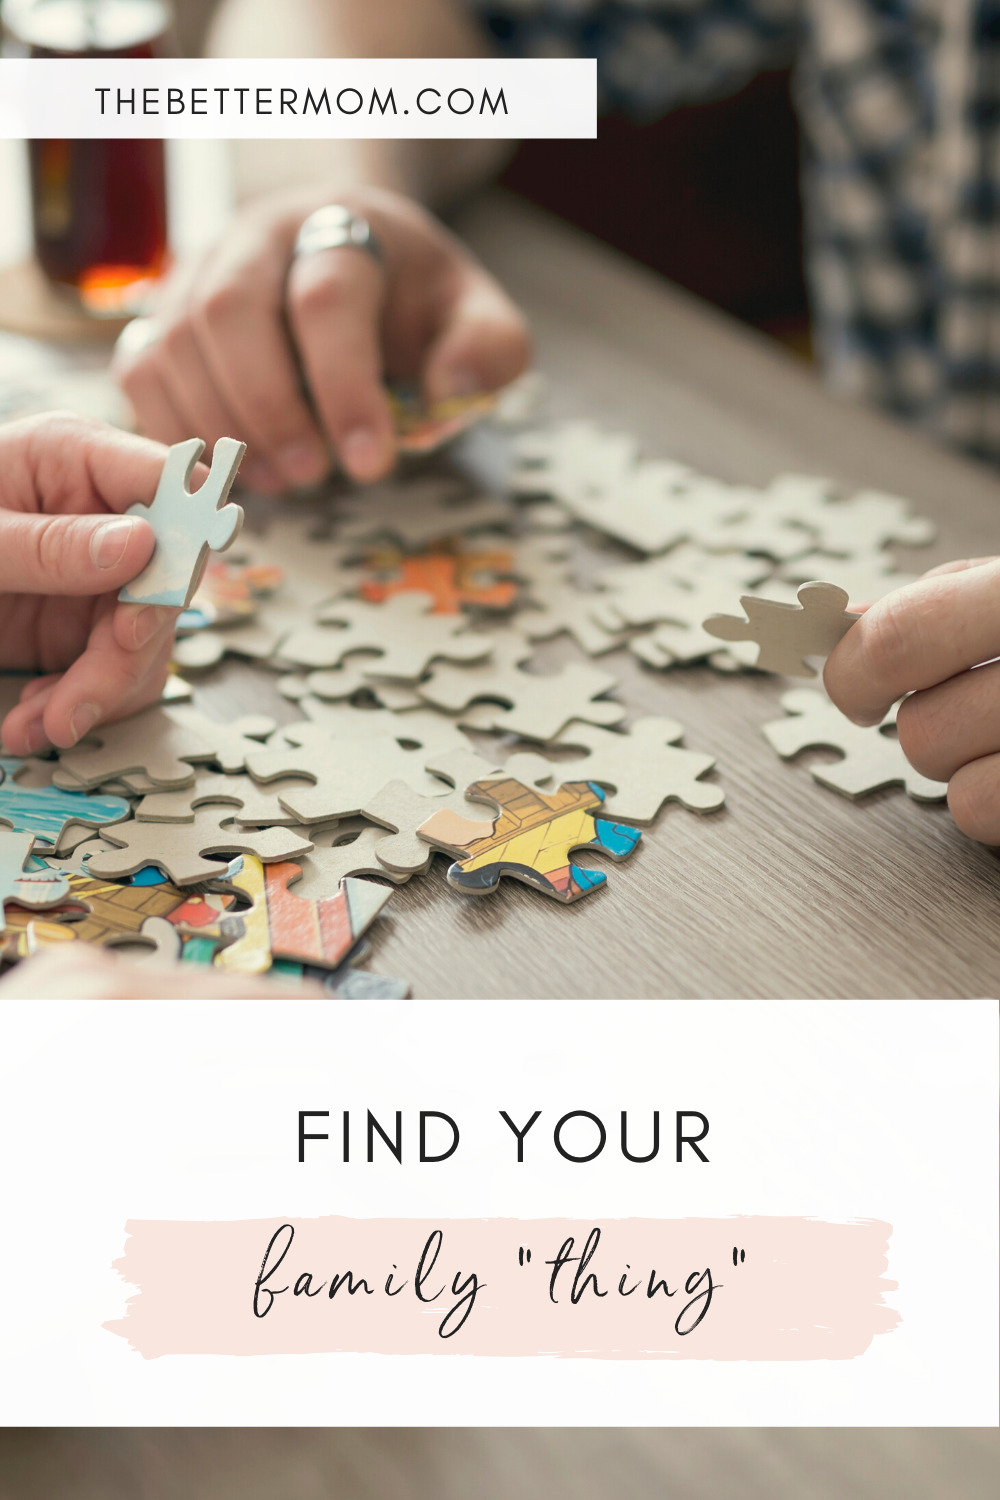 While families across the nation are staying home, people everywhere are rediscovering the joy of a simple pastime. Whether it's puzzling, baking, or knitting, this time is the perfect opportunity to find your